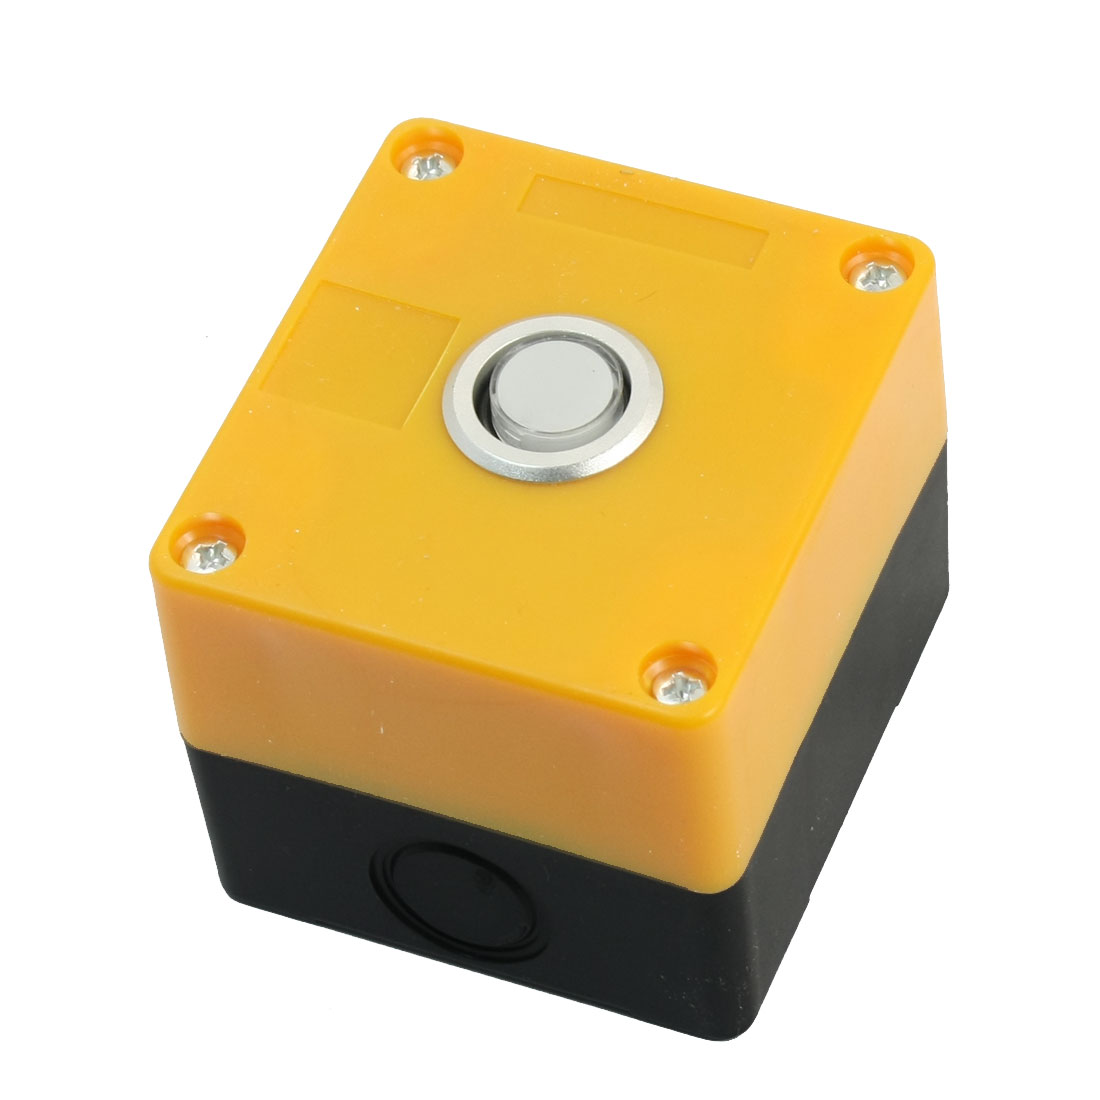 White LED 12V Pilot Lamp AC 250 Volt 5A SPDT 5 Terminals Self-locking Single Hole Pushbutton Push Button Yellow Plastic Control Station Box